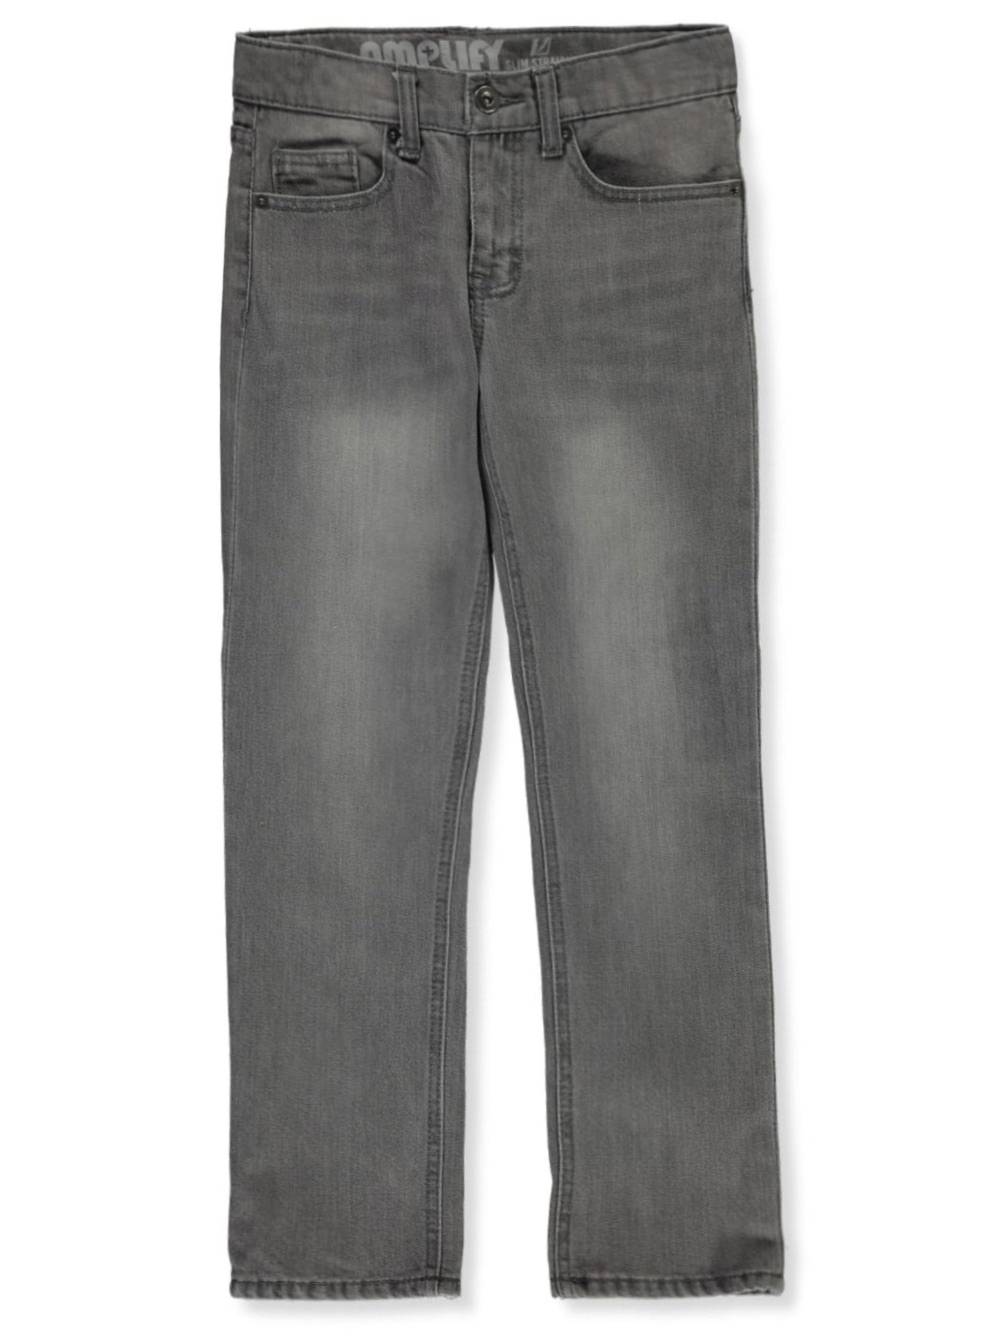 Size 16 Jeans for Boys